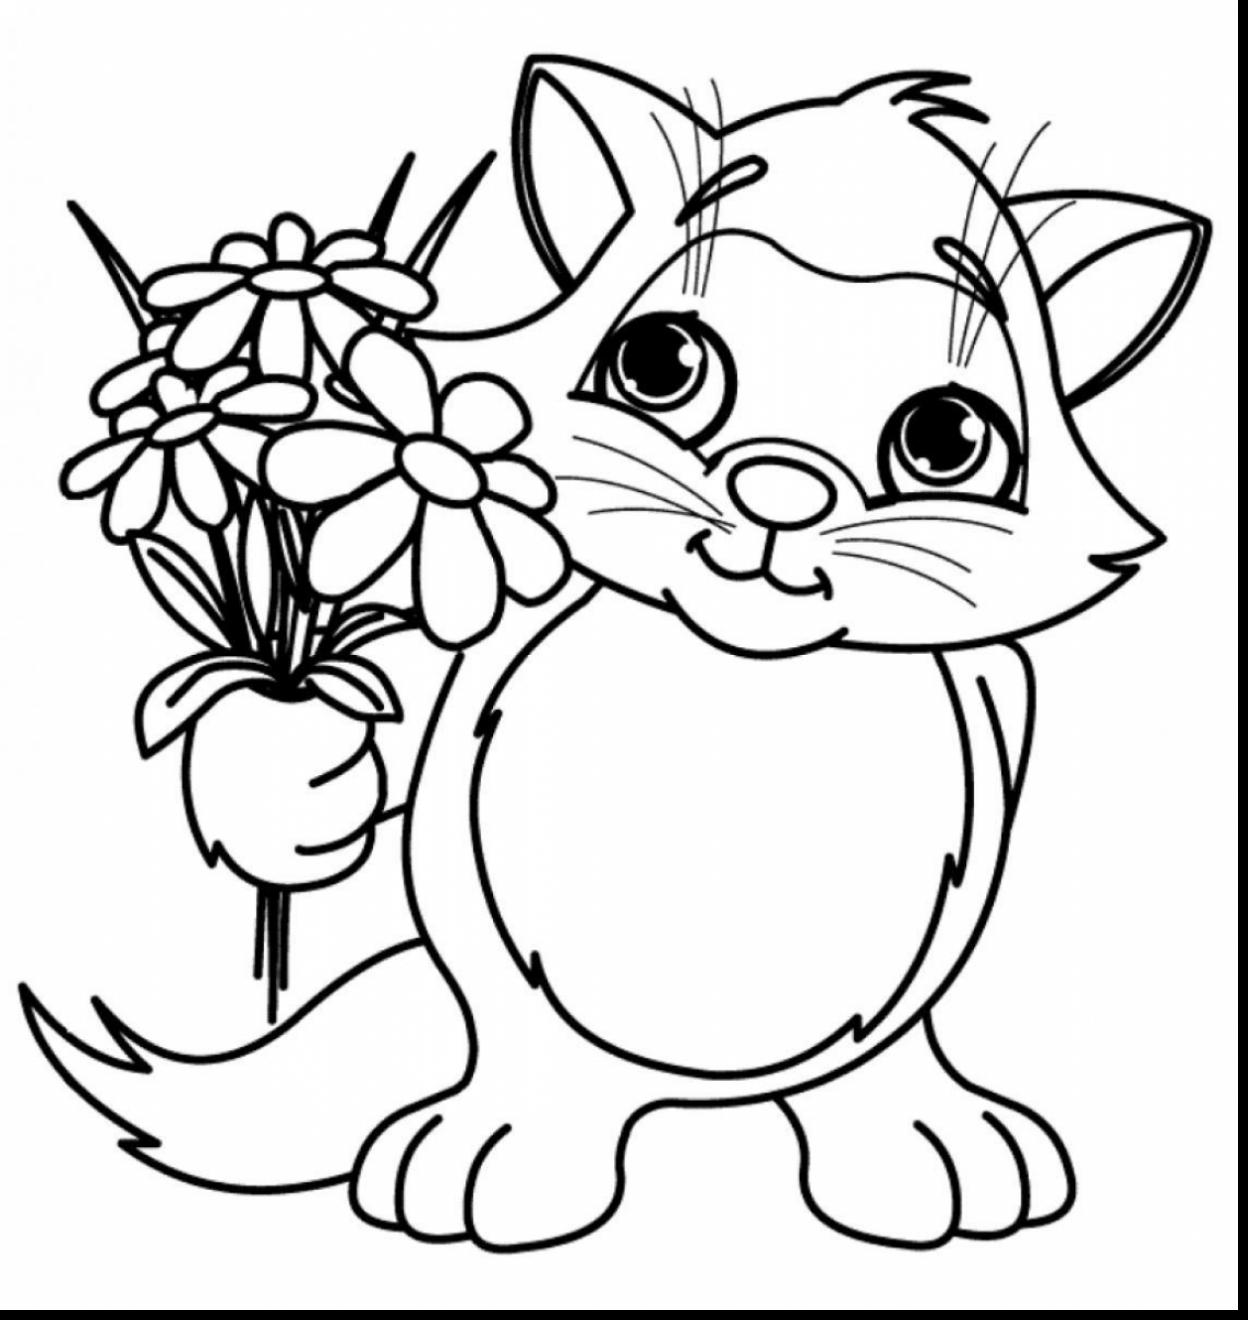 1248x1320 Spring Flower Coloring Pages